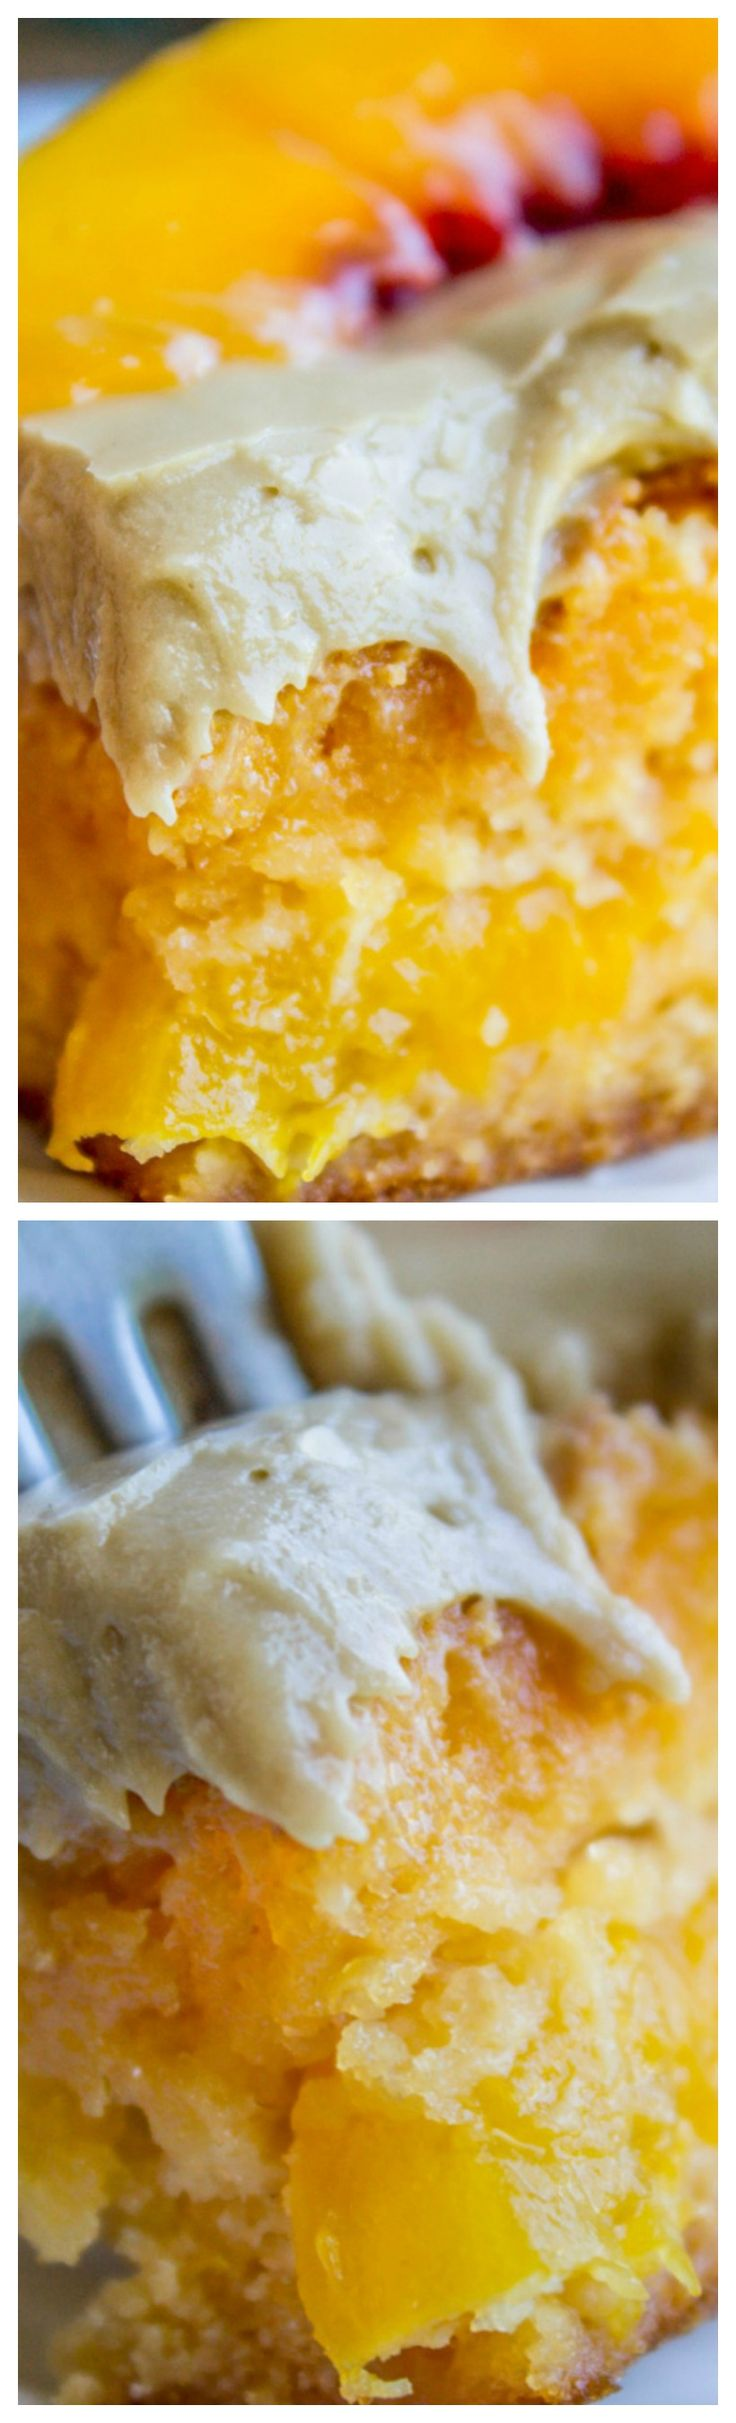 Peach Cake with Brown Sugar Frosting ~ A delightfully peachy cake made from a cake mix and a packet of Jello... There are real peaches in the cake, which makes it super moist. It is topped with a rich brown sugar frosting!